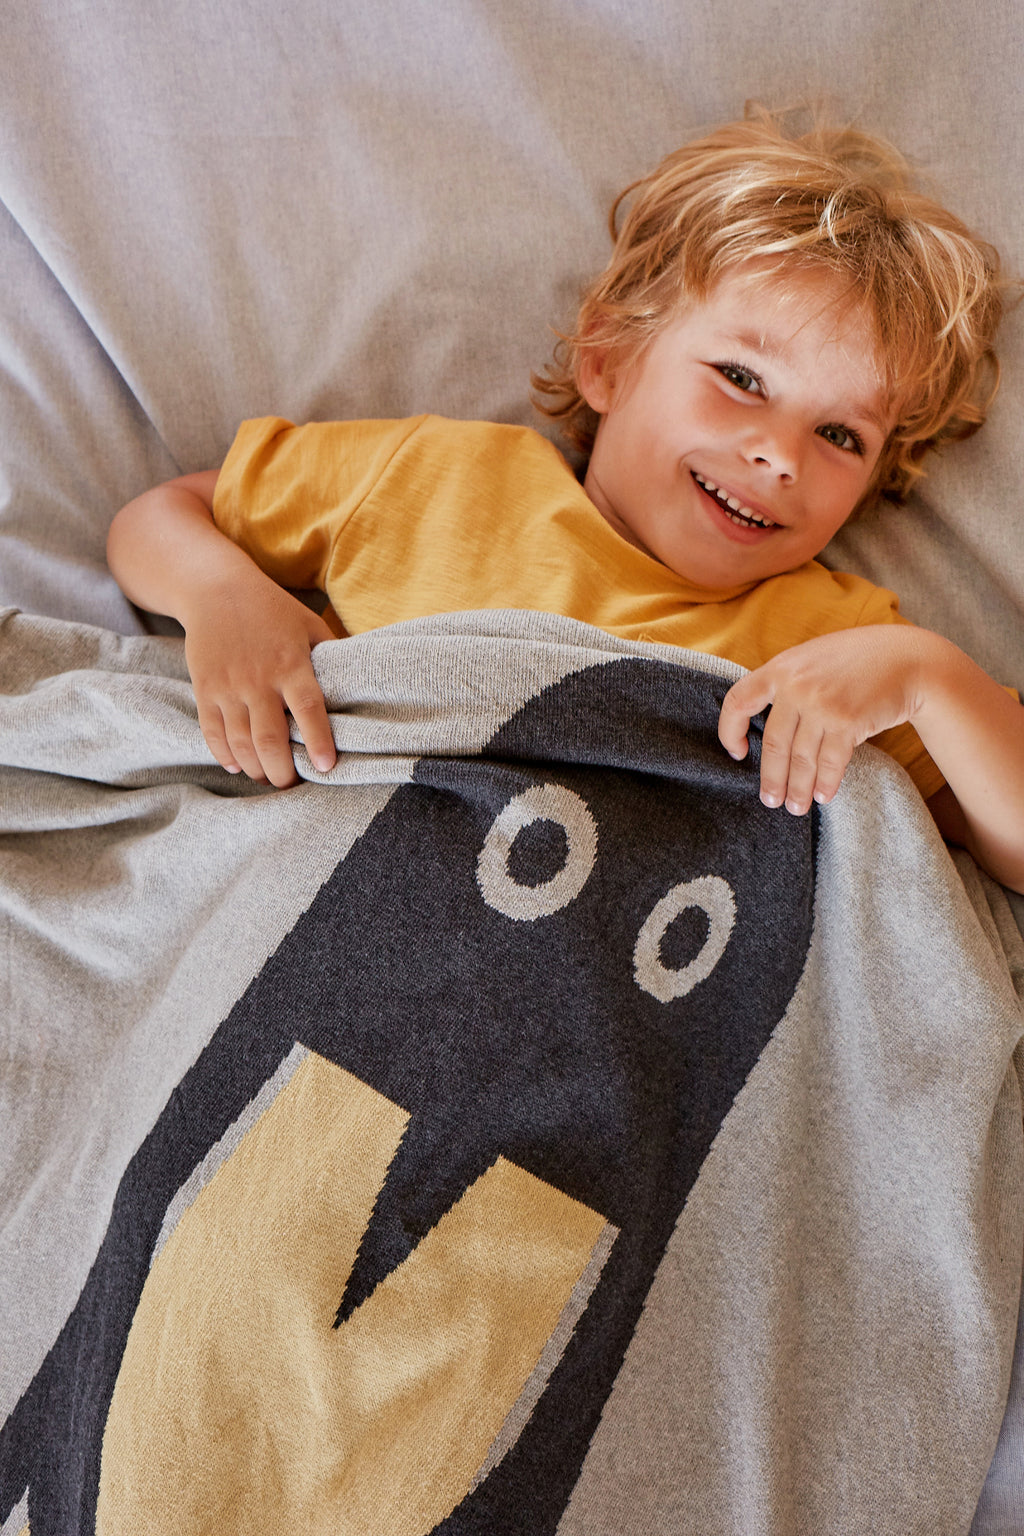 Penguin organic cotton blanket for kids made in Spain